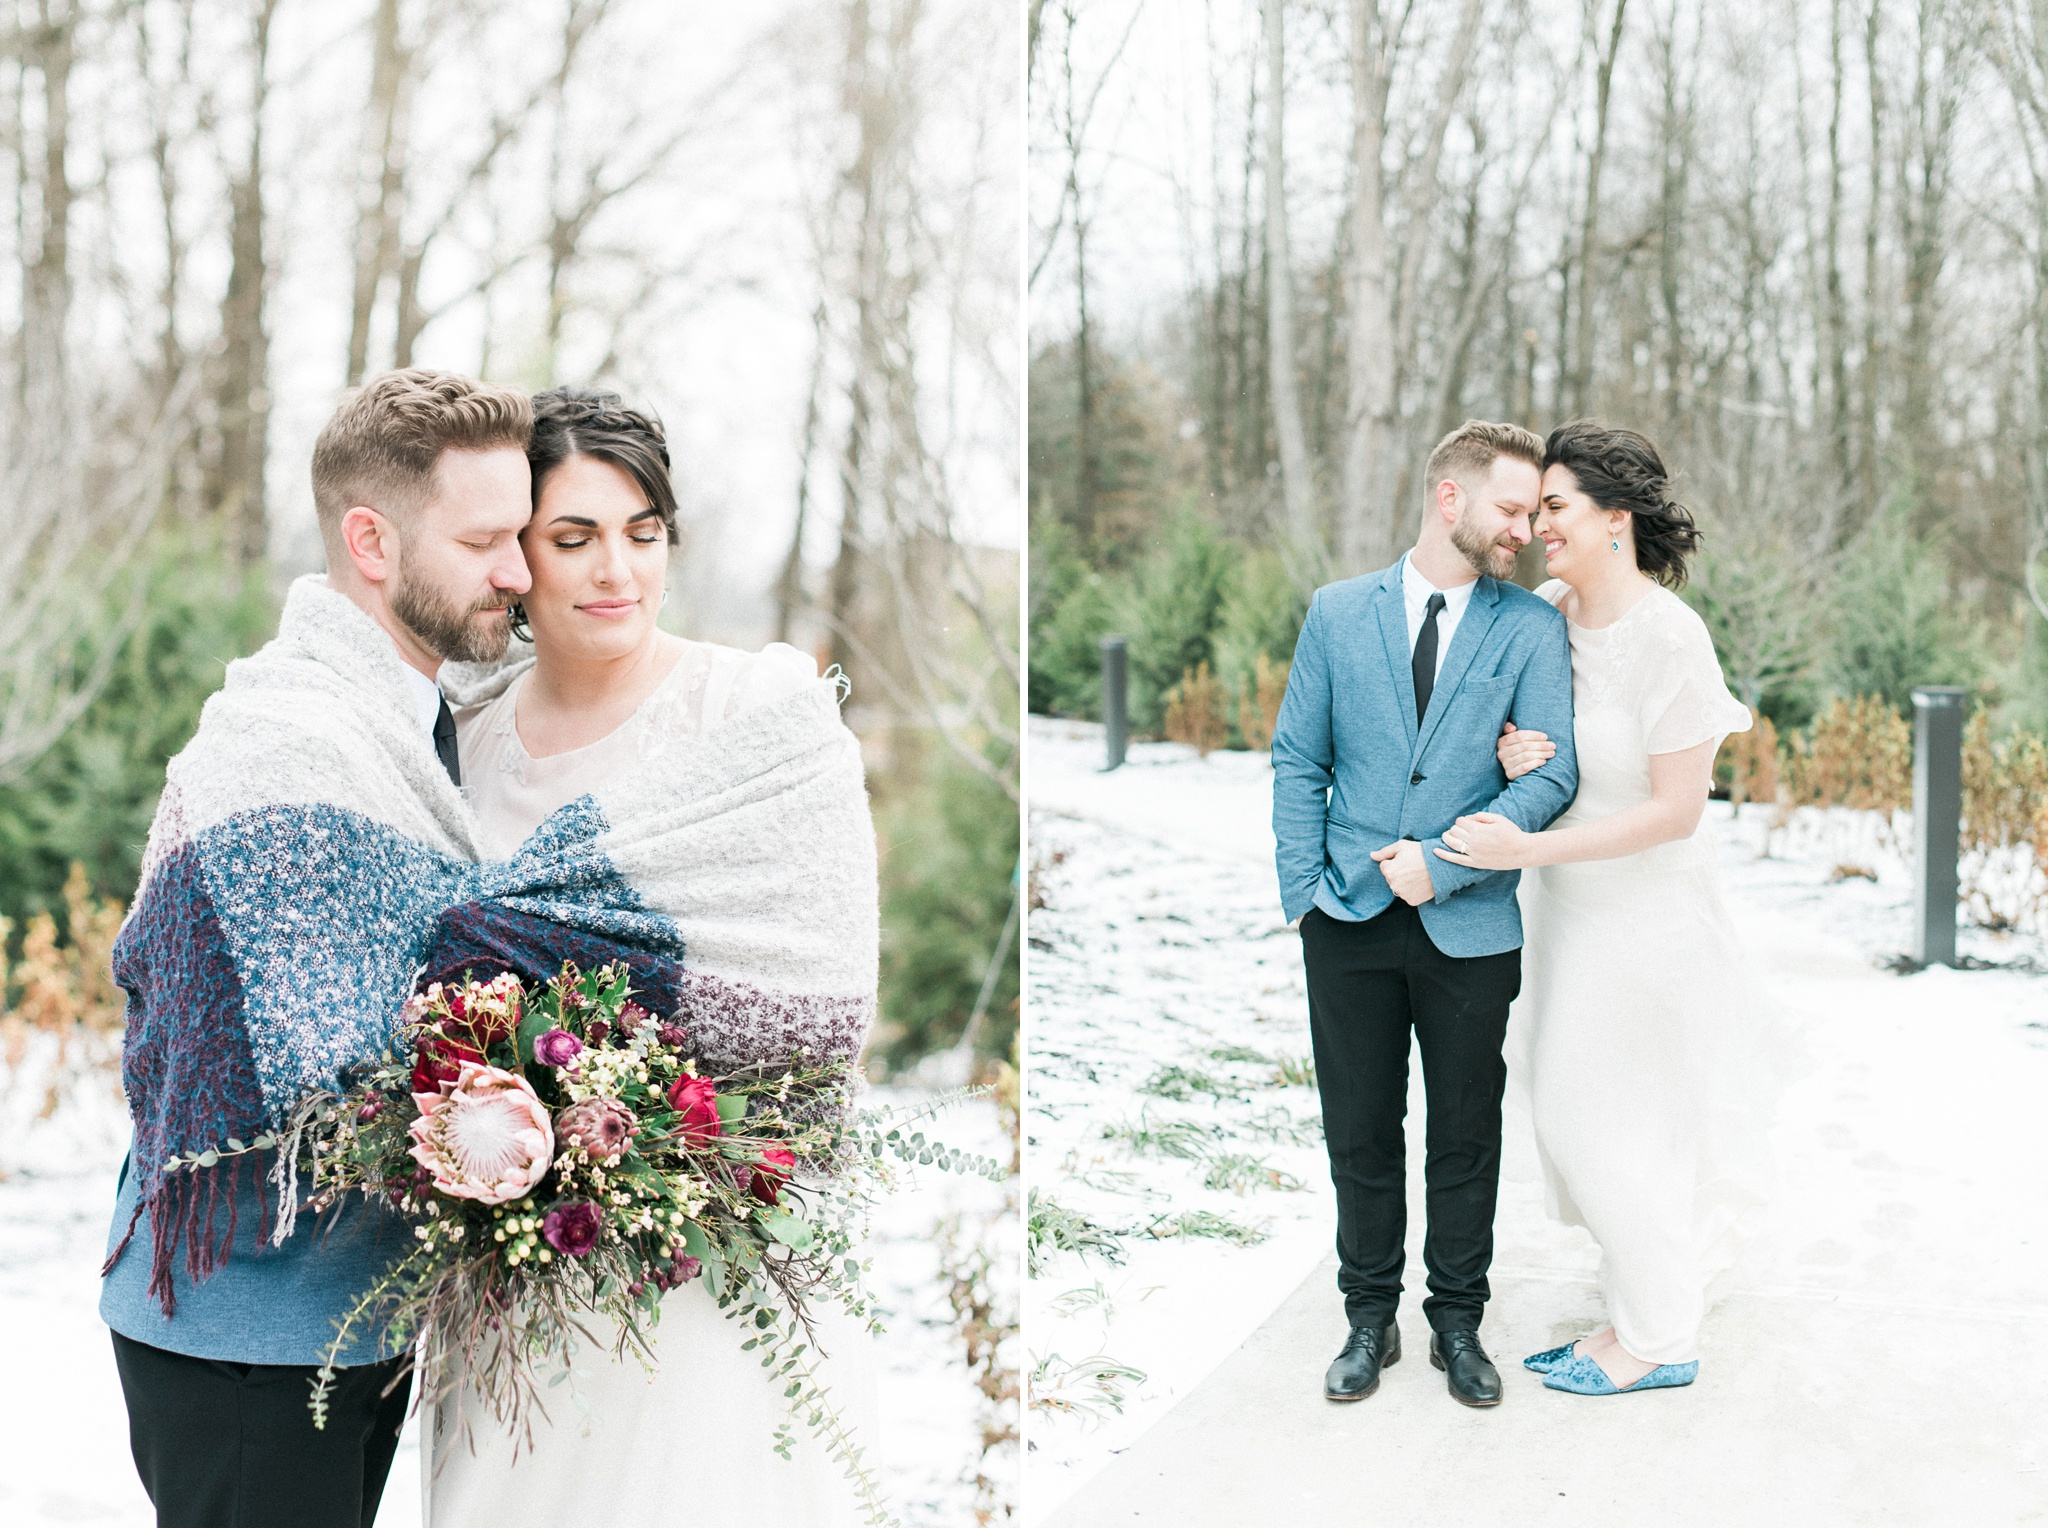 the-estate-new-albany-ohio-winter-wedding-inspiration-76.jpg